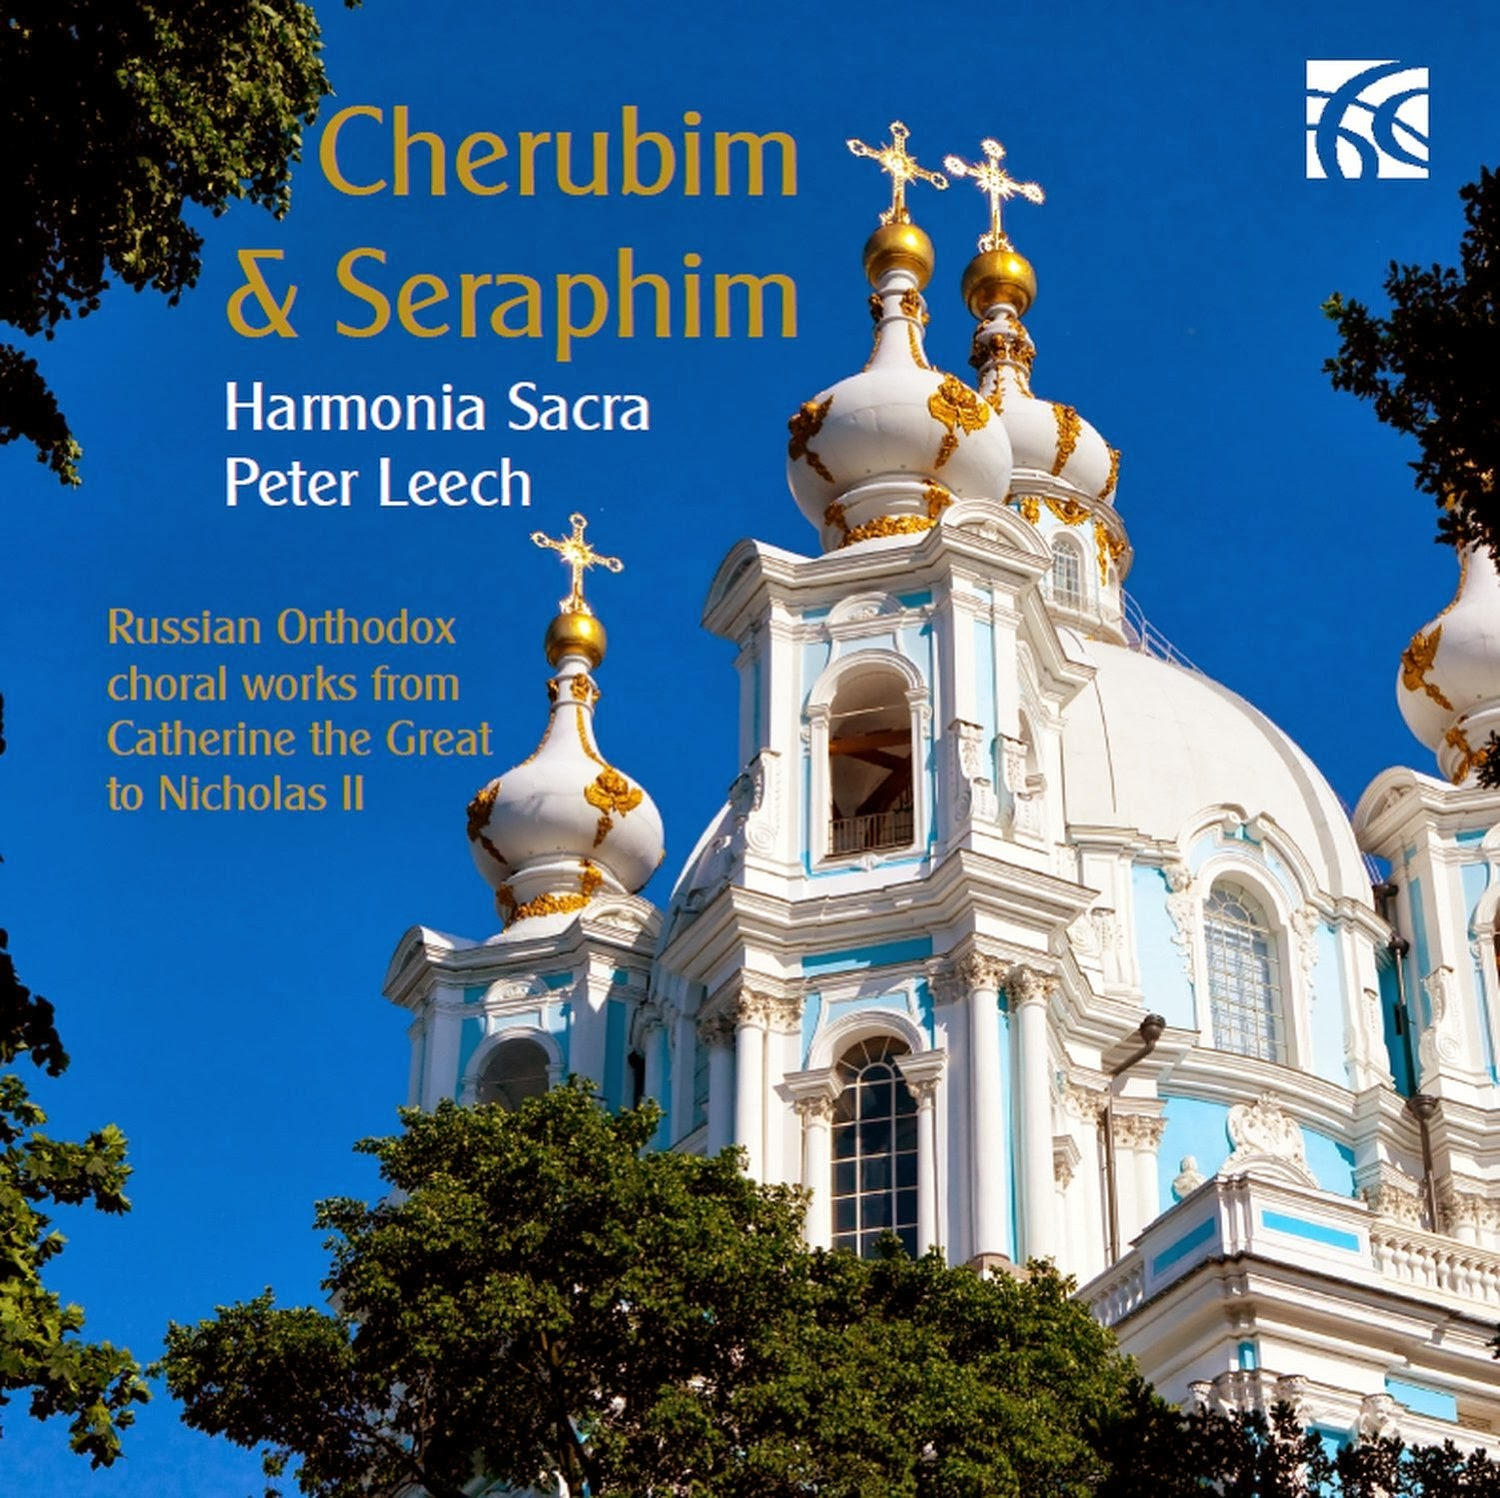 Cherubim and Seraphim: Harmonia Sacra, Peter Leech: Nimbus Alliance NI 6187